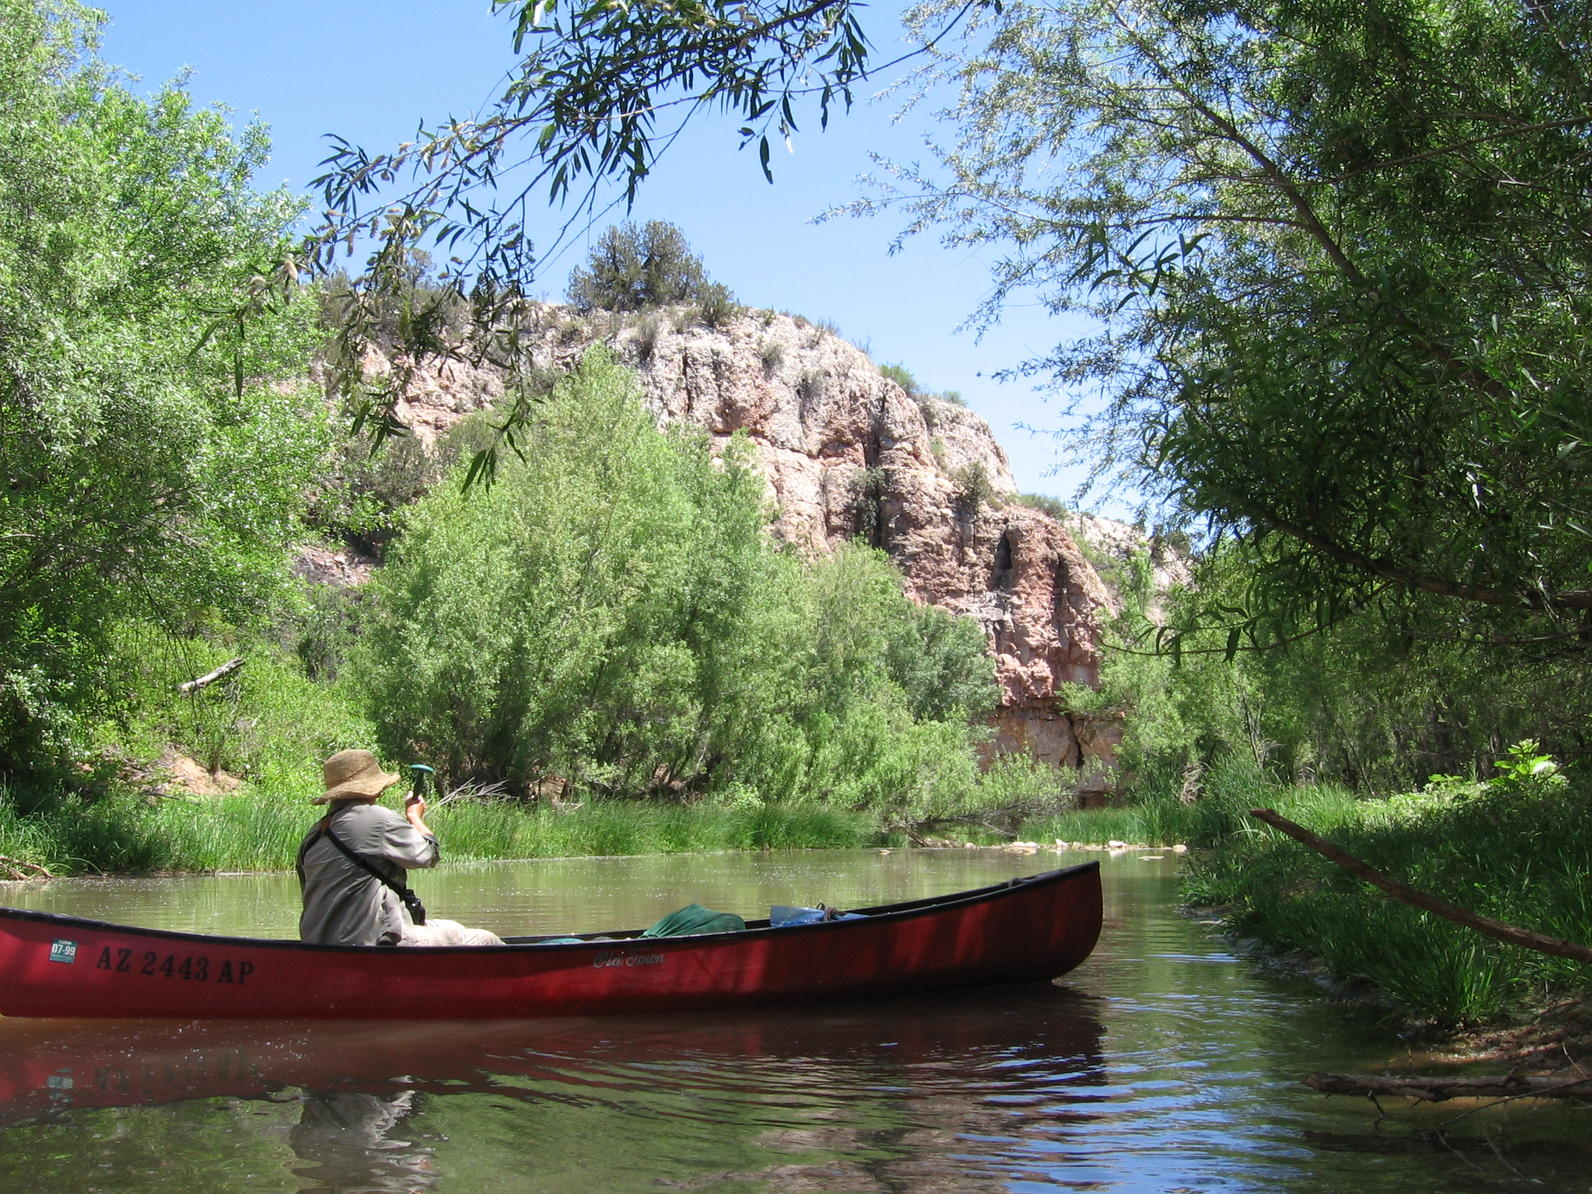 Take action for western rivers audubon arizona you can help protect our western rivers and the birds and other life that depend on them healthy rivers mean healthy habitats and community buycottarizona Gallery